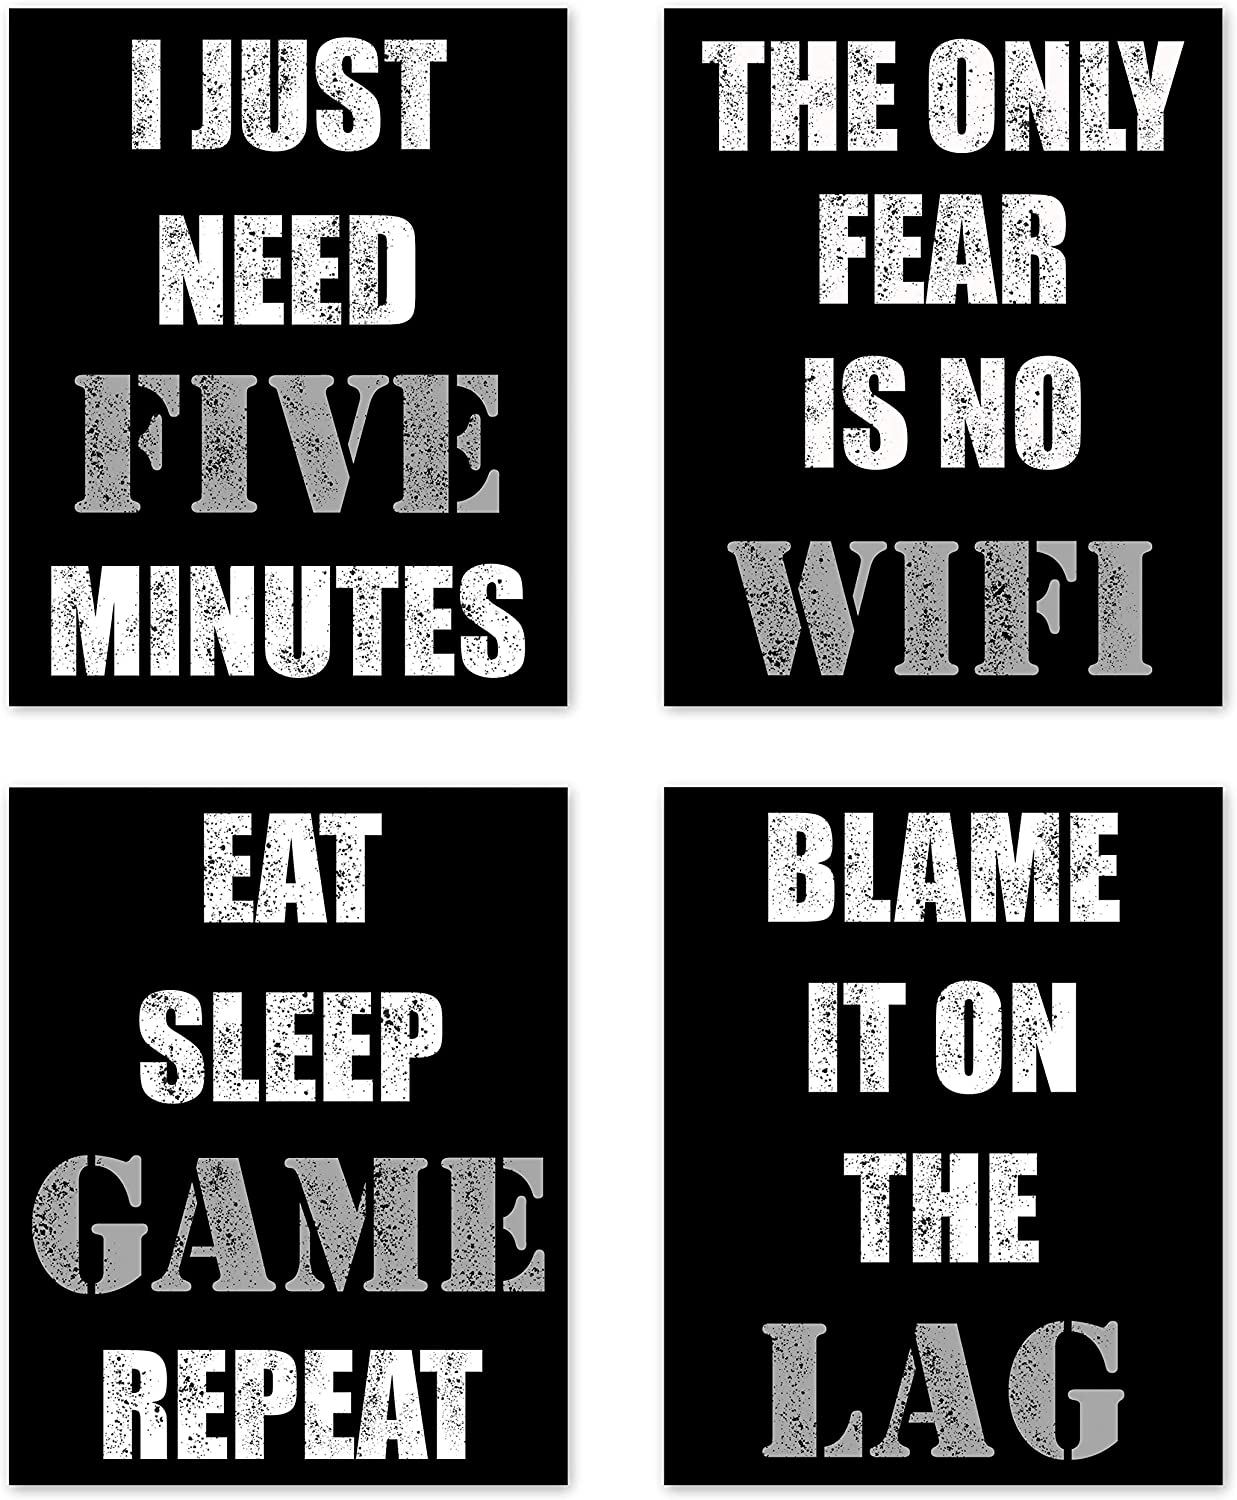 Video Game Themed Gamer Wall Art Posters Home Decor Black, White and Grey Gaming Bedroom Pictures Prints Decorations for Teen Dorm College Playrooom Gameroom Boys Girls Children –Set of 4 8 x 10 in.